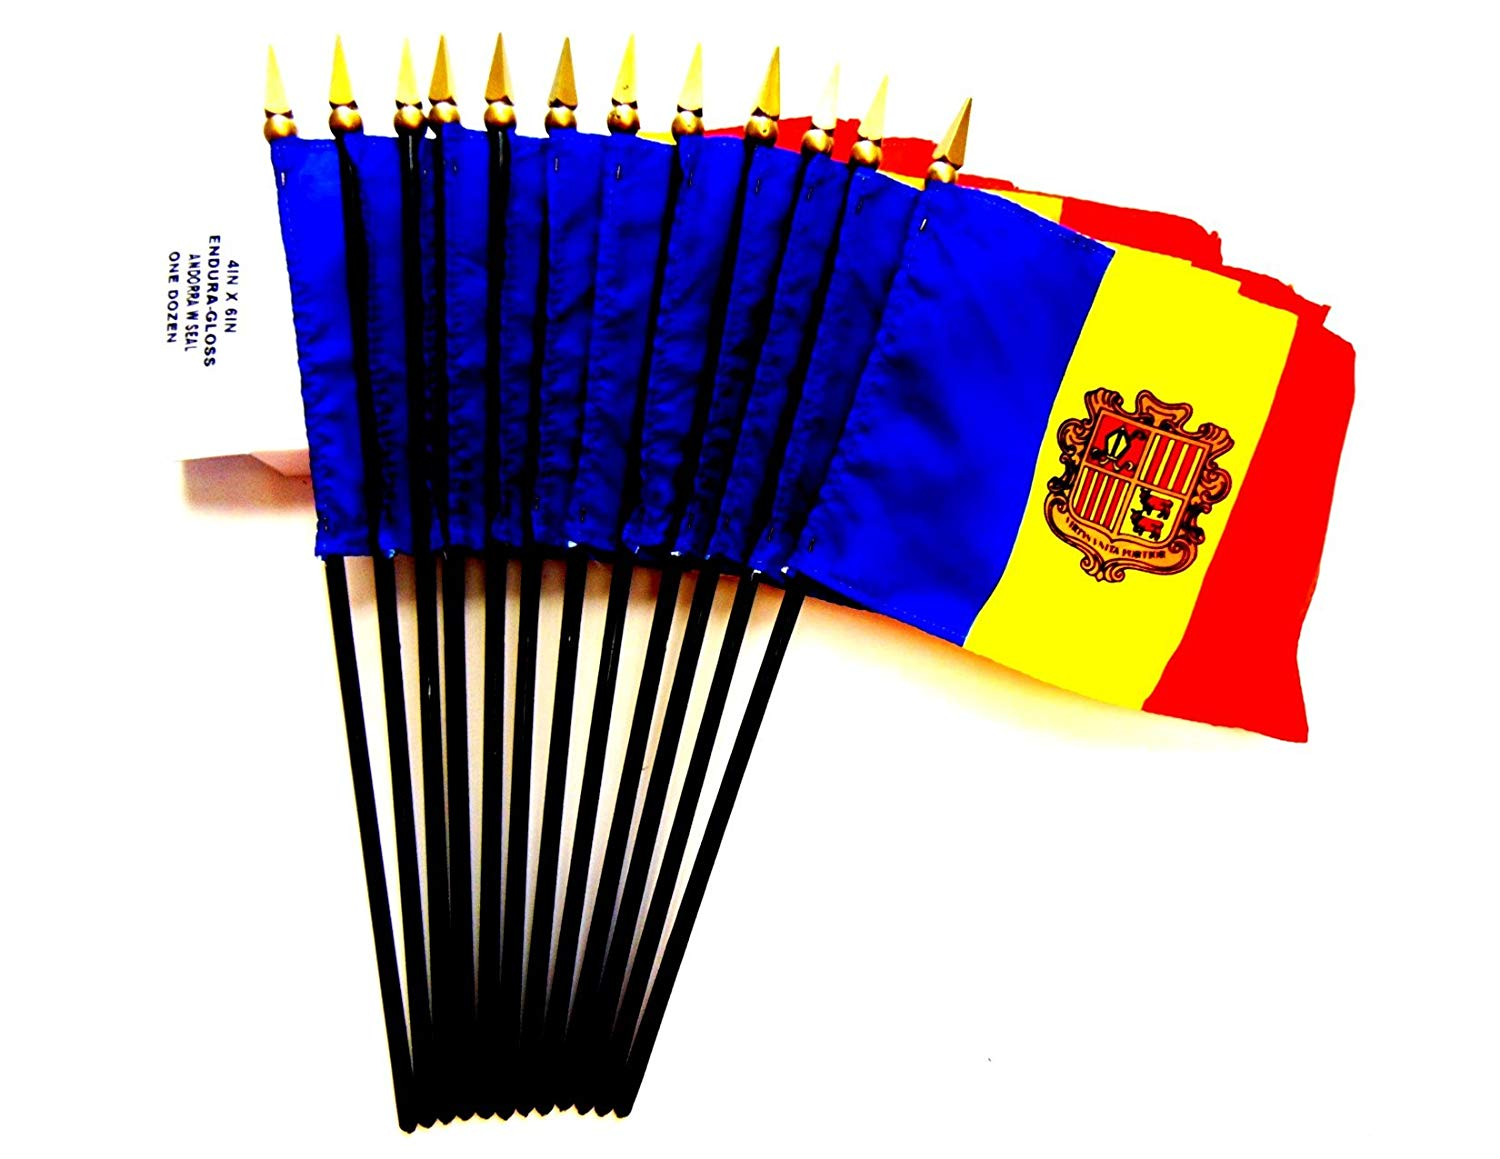 "MADE IN USA!! Box of 12 Andorra 4""x6"" Miniature Desk & Table Flags; 12 American Made Small Mini Andorran Flags in a Custom Made Cardboard Box Specifically Made for These Flags"